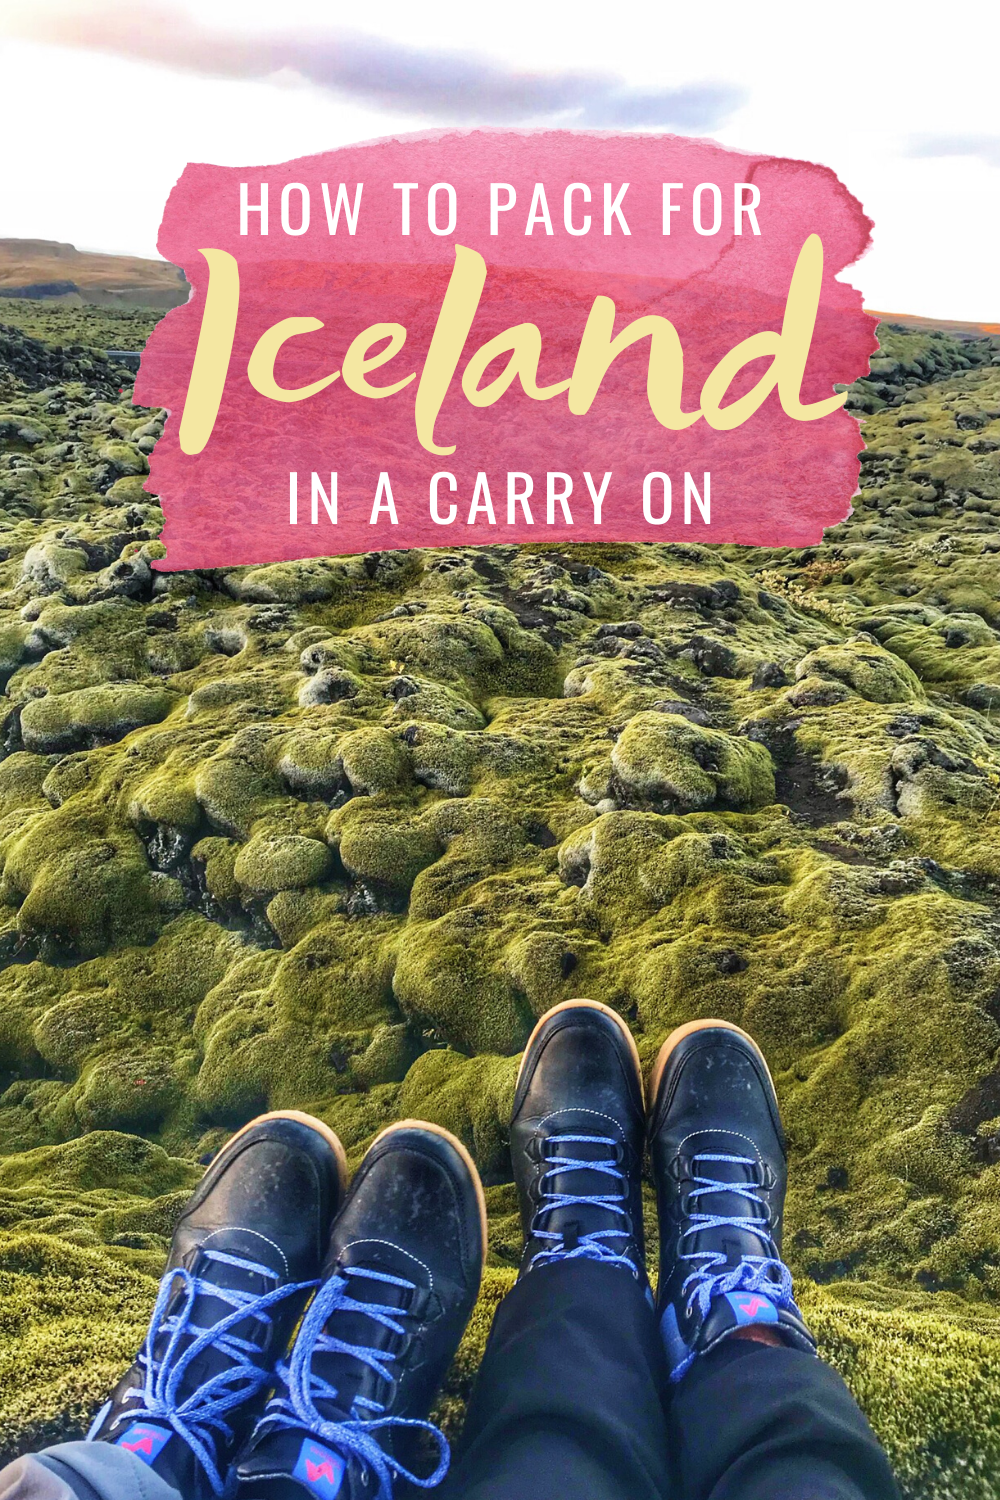 How To Pack For Iceland In A Carry-On - Packing List For Iceland - What To Pack For Iceland - Iceland Essentials - Iceland Travel - Reykjavik - Vik - Southeastern Iceland - Iceland Roadtrip - How to pack for Iceland - The North Face - Backcountry.com - Iceland Travel Blog - #iceland #travel #packinglist